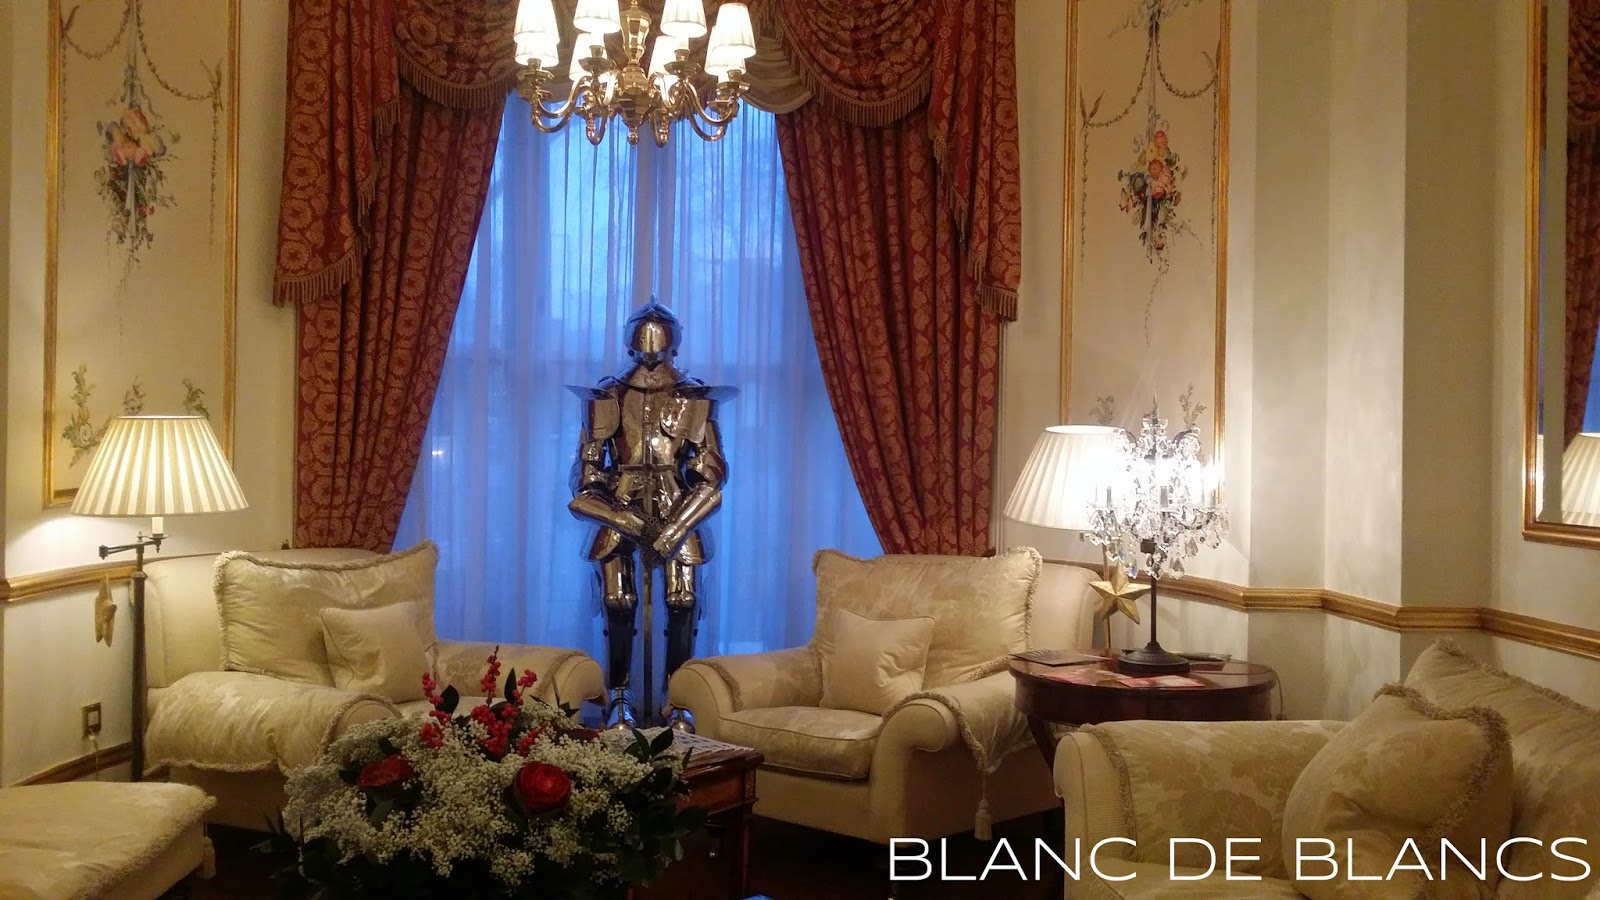 The Colonnade Hotel, London - www.blancdeblancs.fi